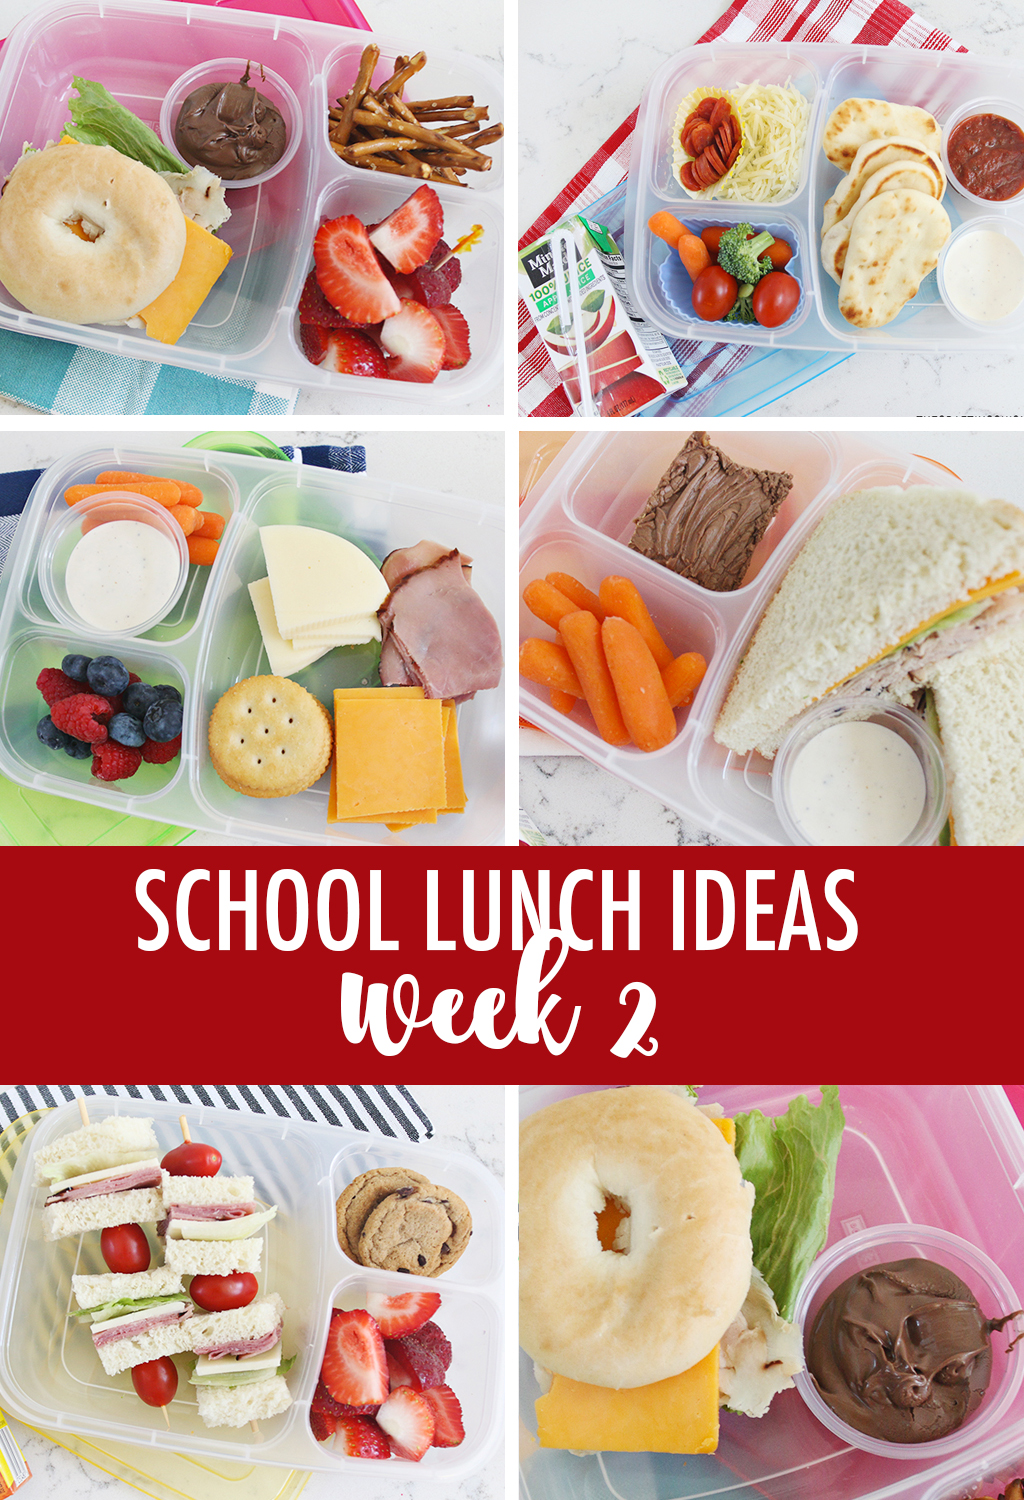 School Lunch Ideas Week 2